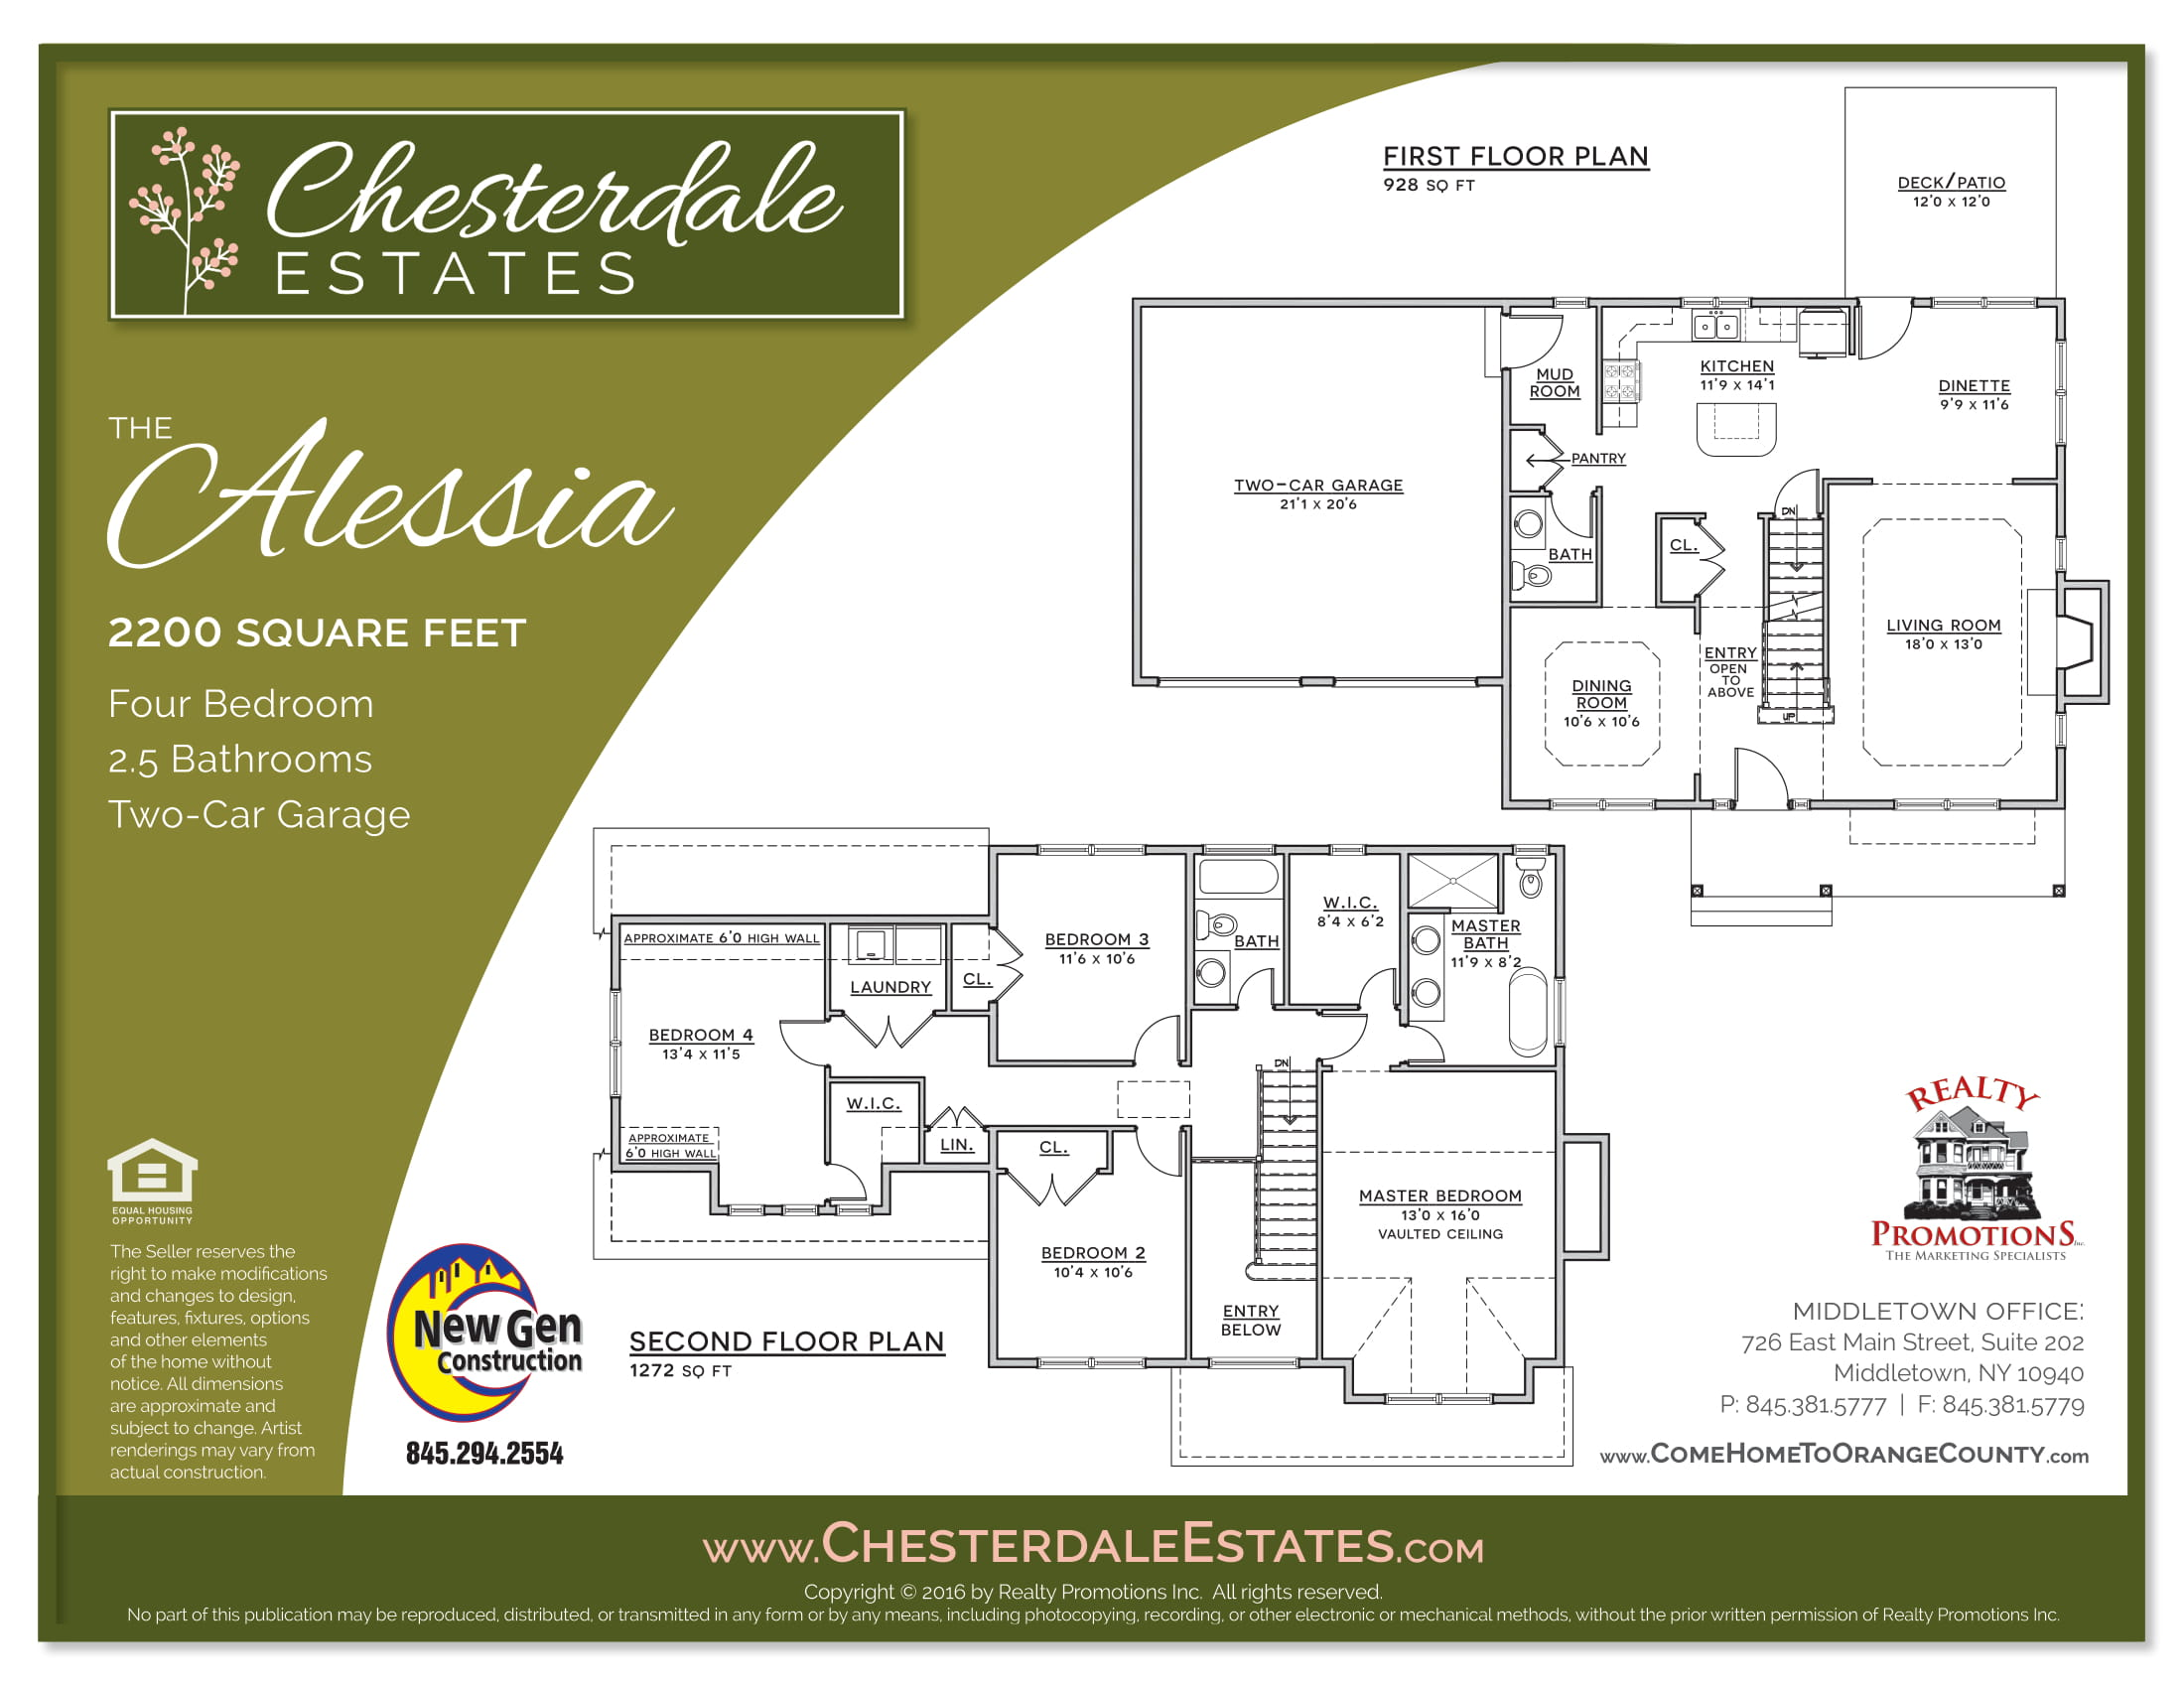 Christopher Ogden Middletown Ny Real Estate Thealessia Chesterdale 2